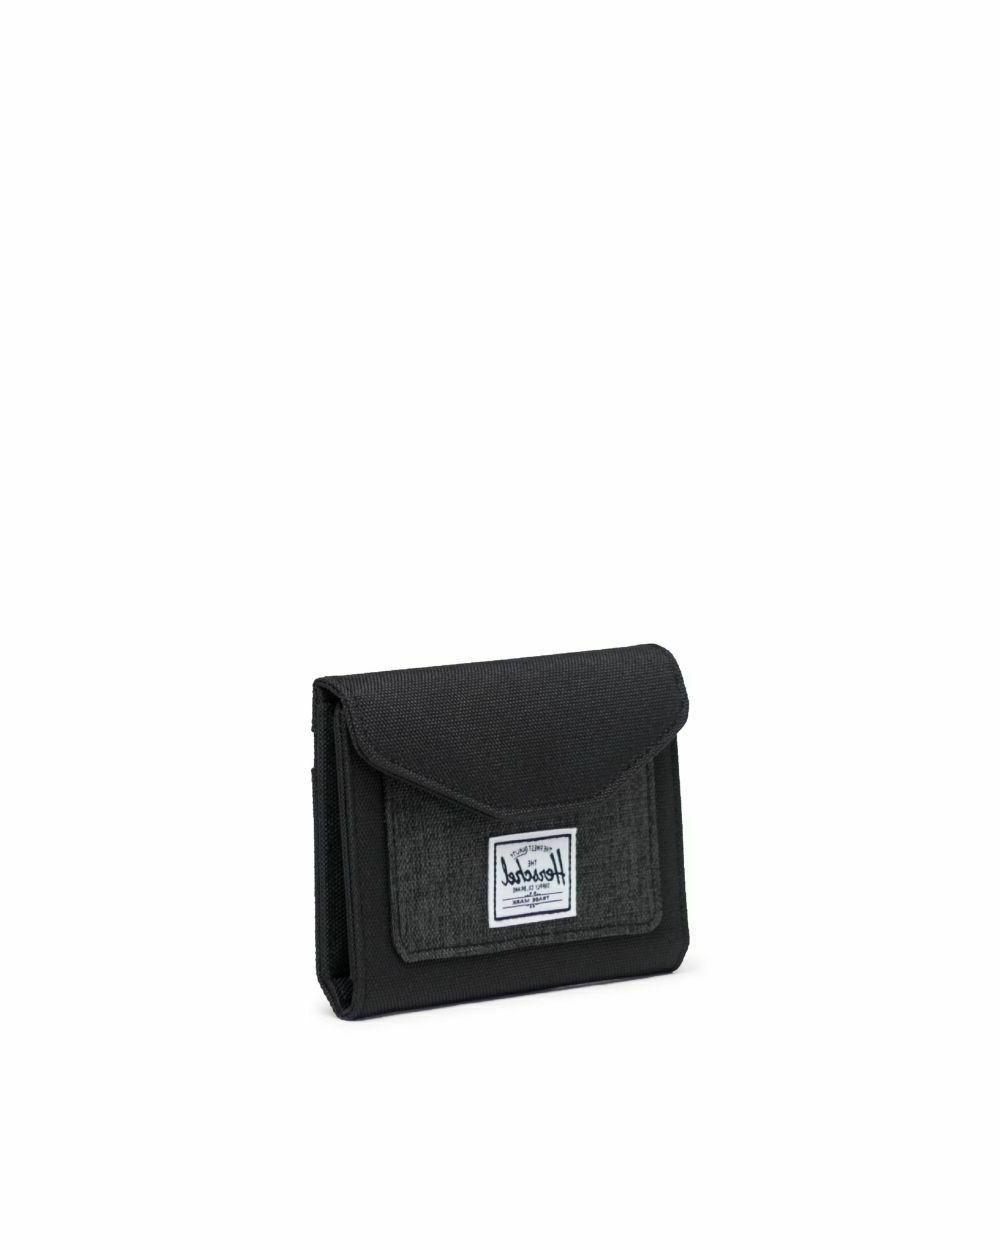 NWT! Co.Orion Wallet Card Holder Snap